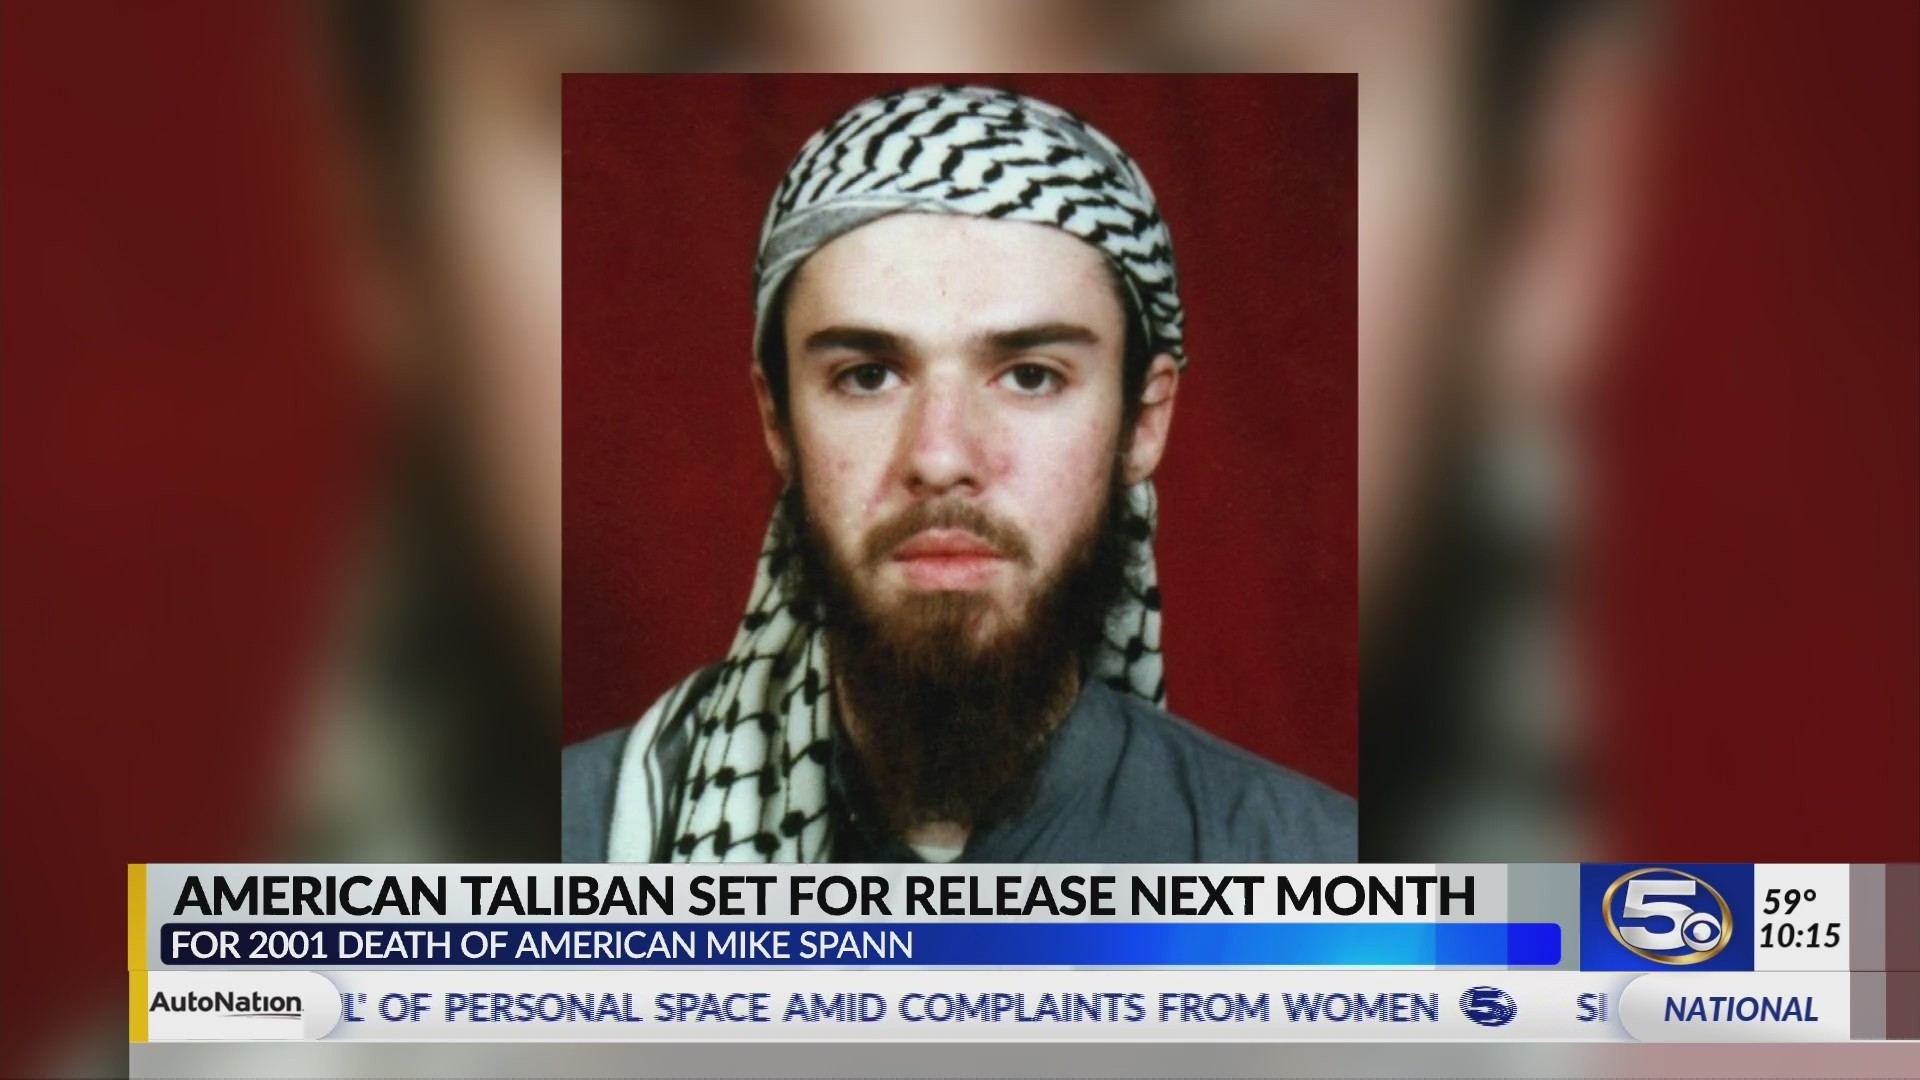 American Taliban set for release